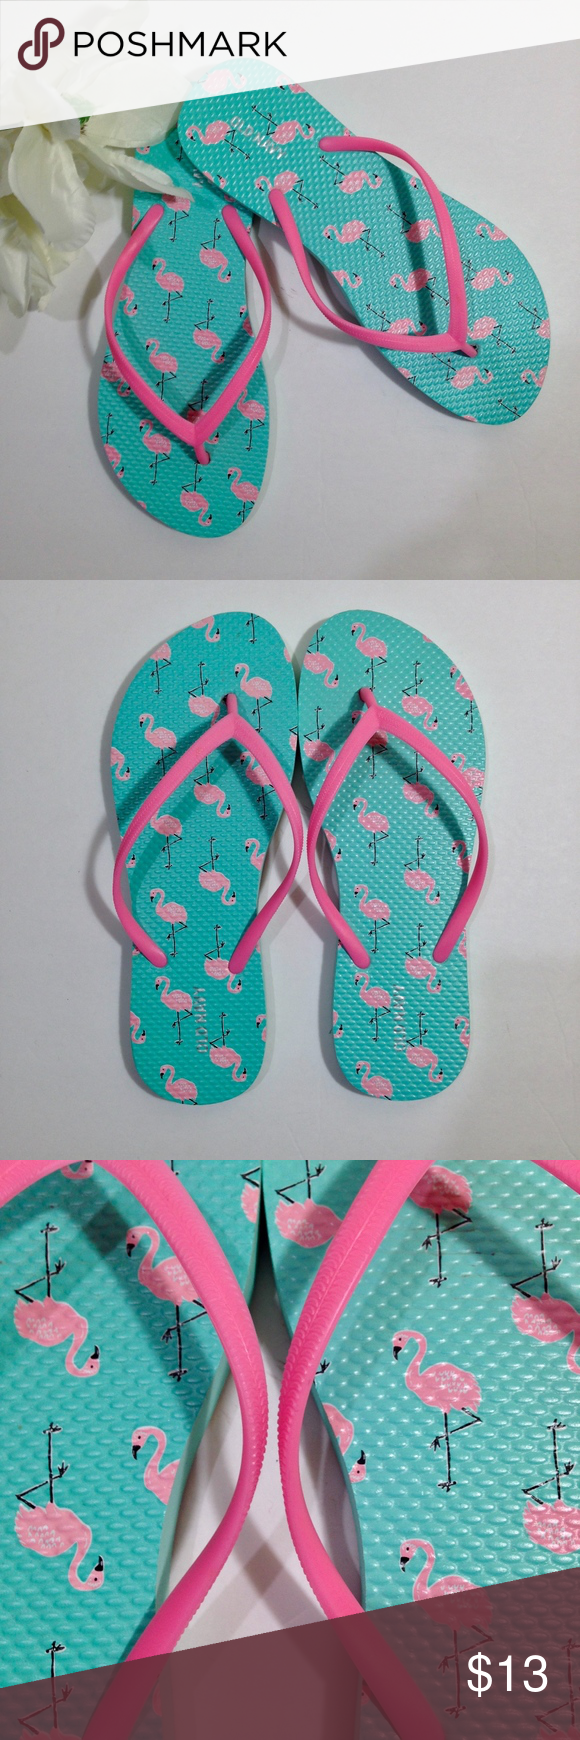 accbcf3157536 NEW Old Navy Pink Flamingo Green Flip Flops Size 8 Women s new old navy  pink flamingo